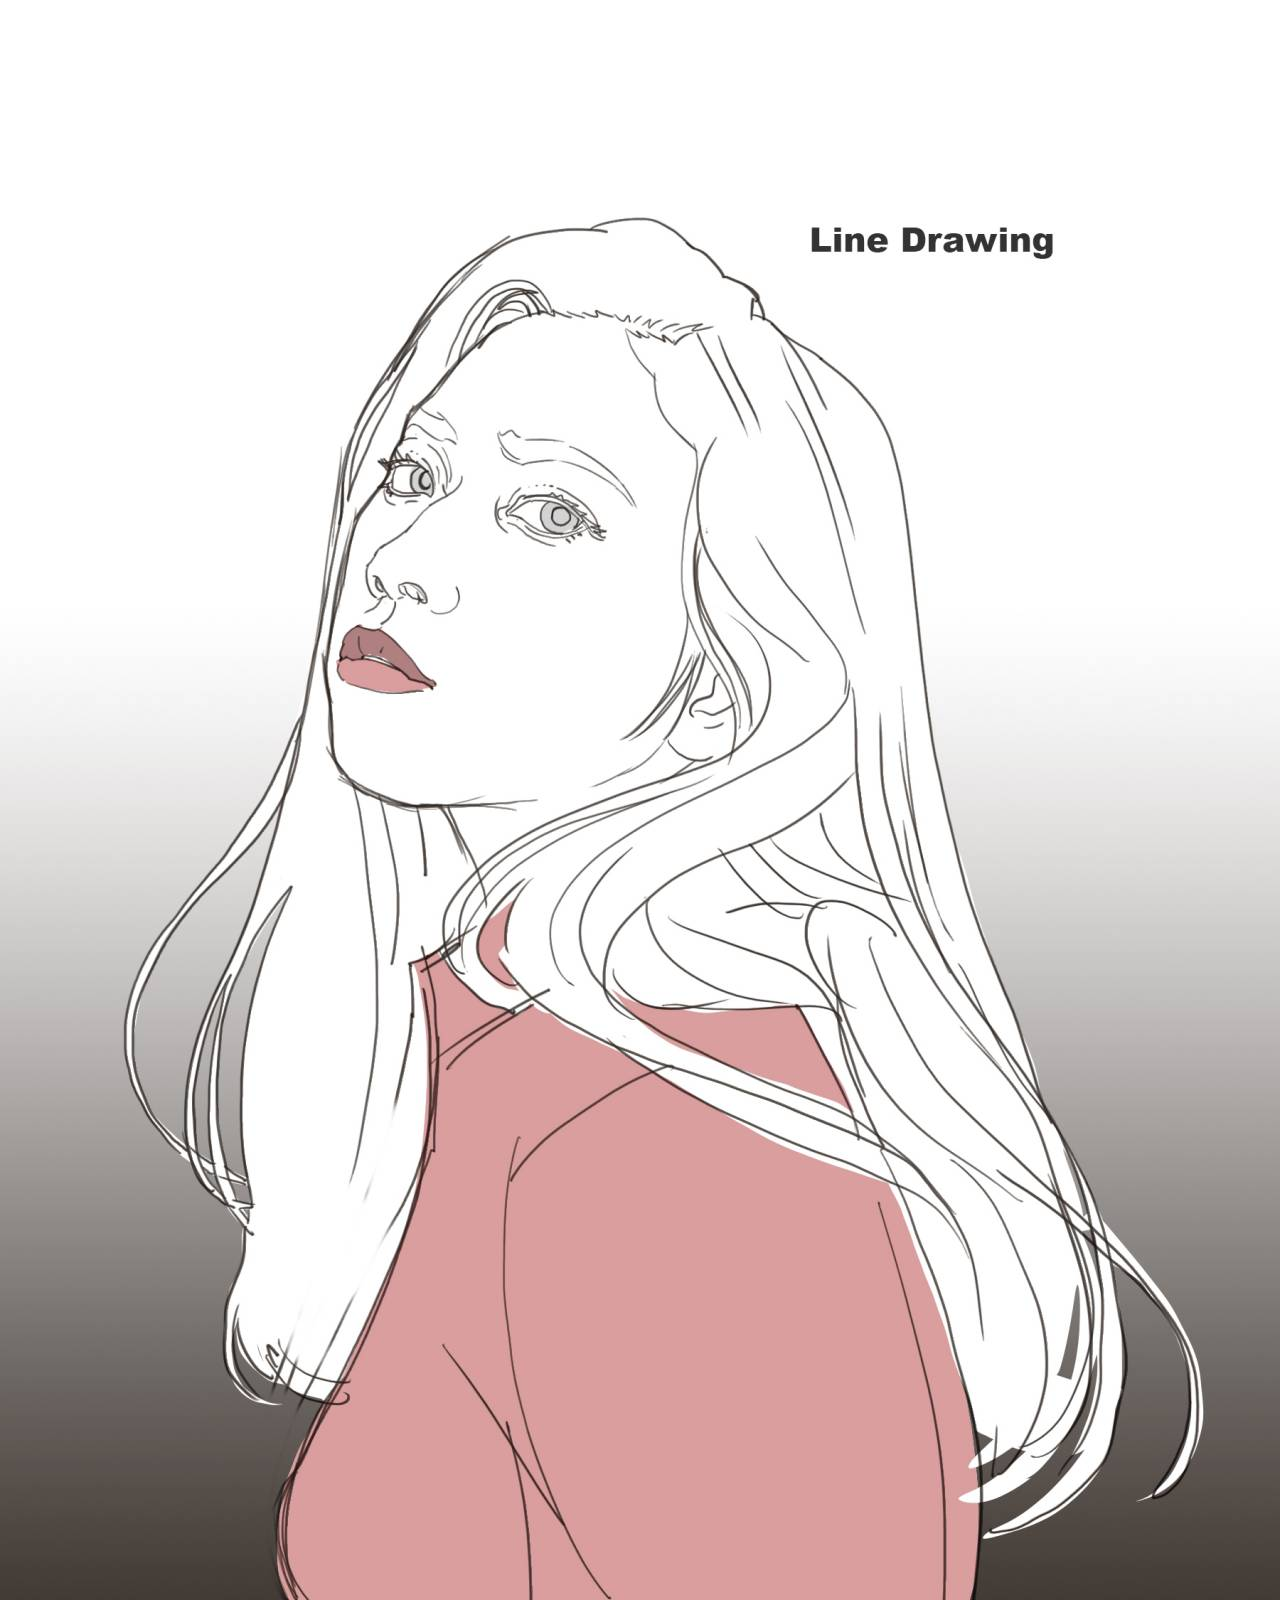 Drawing Building Structure With Line